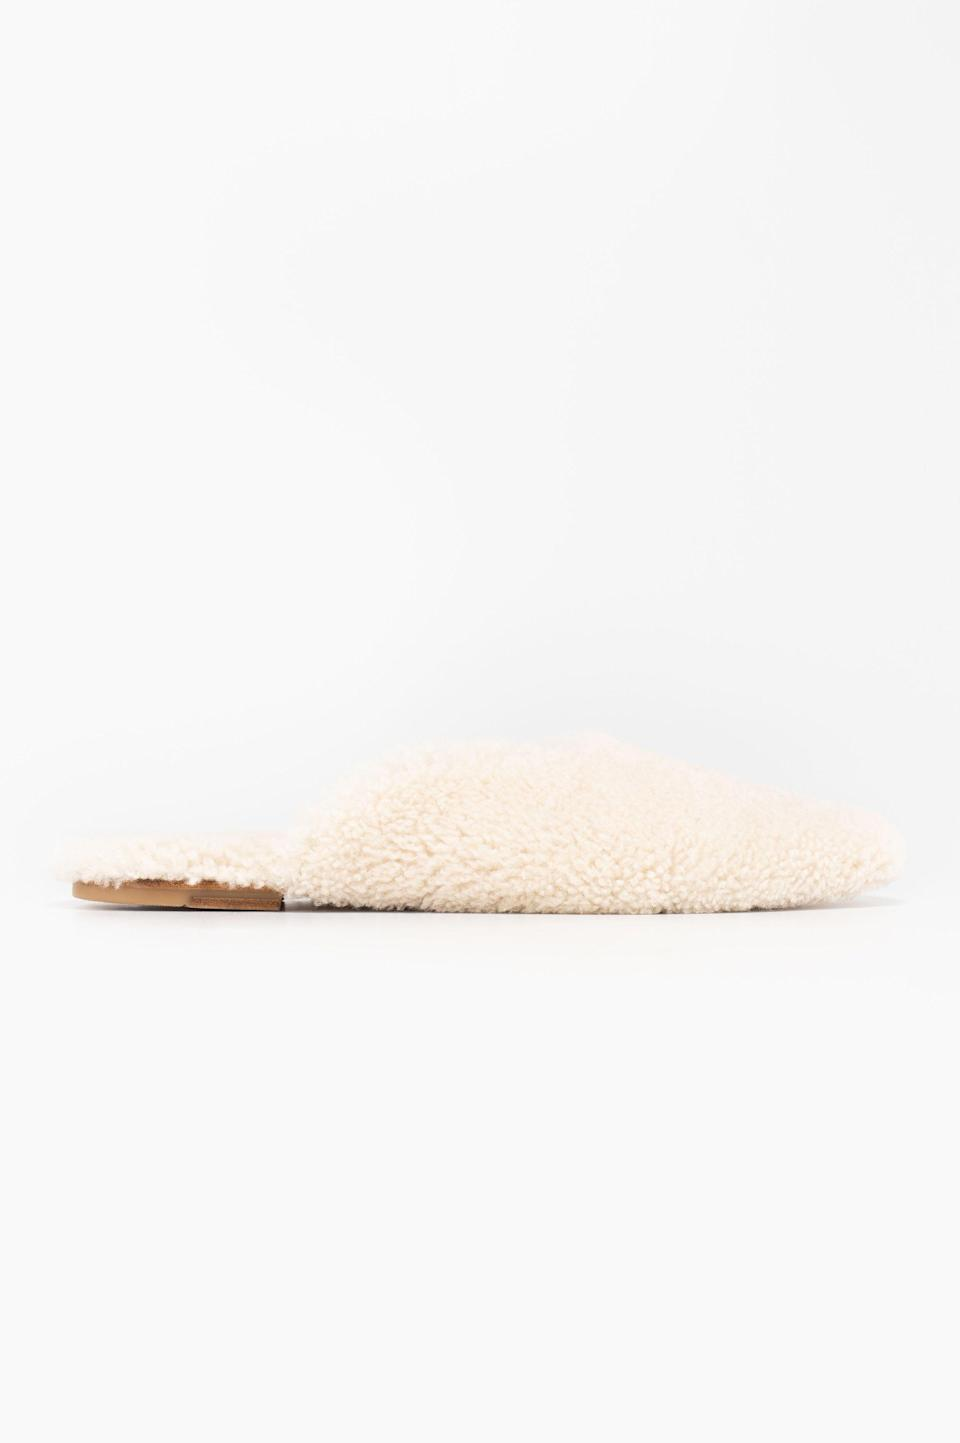 """<p><strong>The Sleeper </strong></p><p>the-sleeper.com</p><p><strong>$290.00</strong></p><p><a href=""""https://the-sleeper.com/en/product/cream-shearling-slippers/"""" rel=""""nofollow noopener"""" target=""""_blank"""" data-ylk=""""slk:SHOP IT"""" class=""""link rapid-noclick-resp"""">SHOP IT </a></p><p>This shearling pair is equal parts cozy and chic. </p>"""